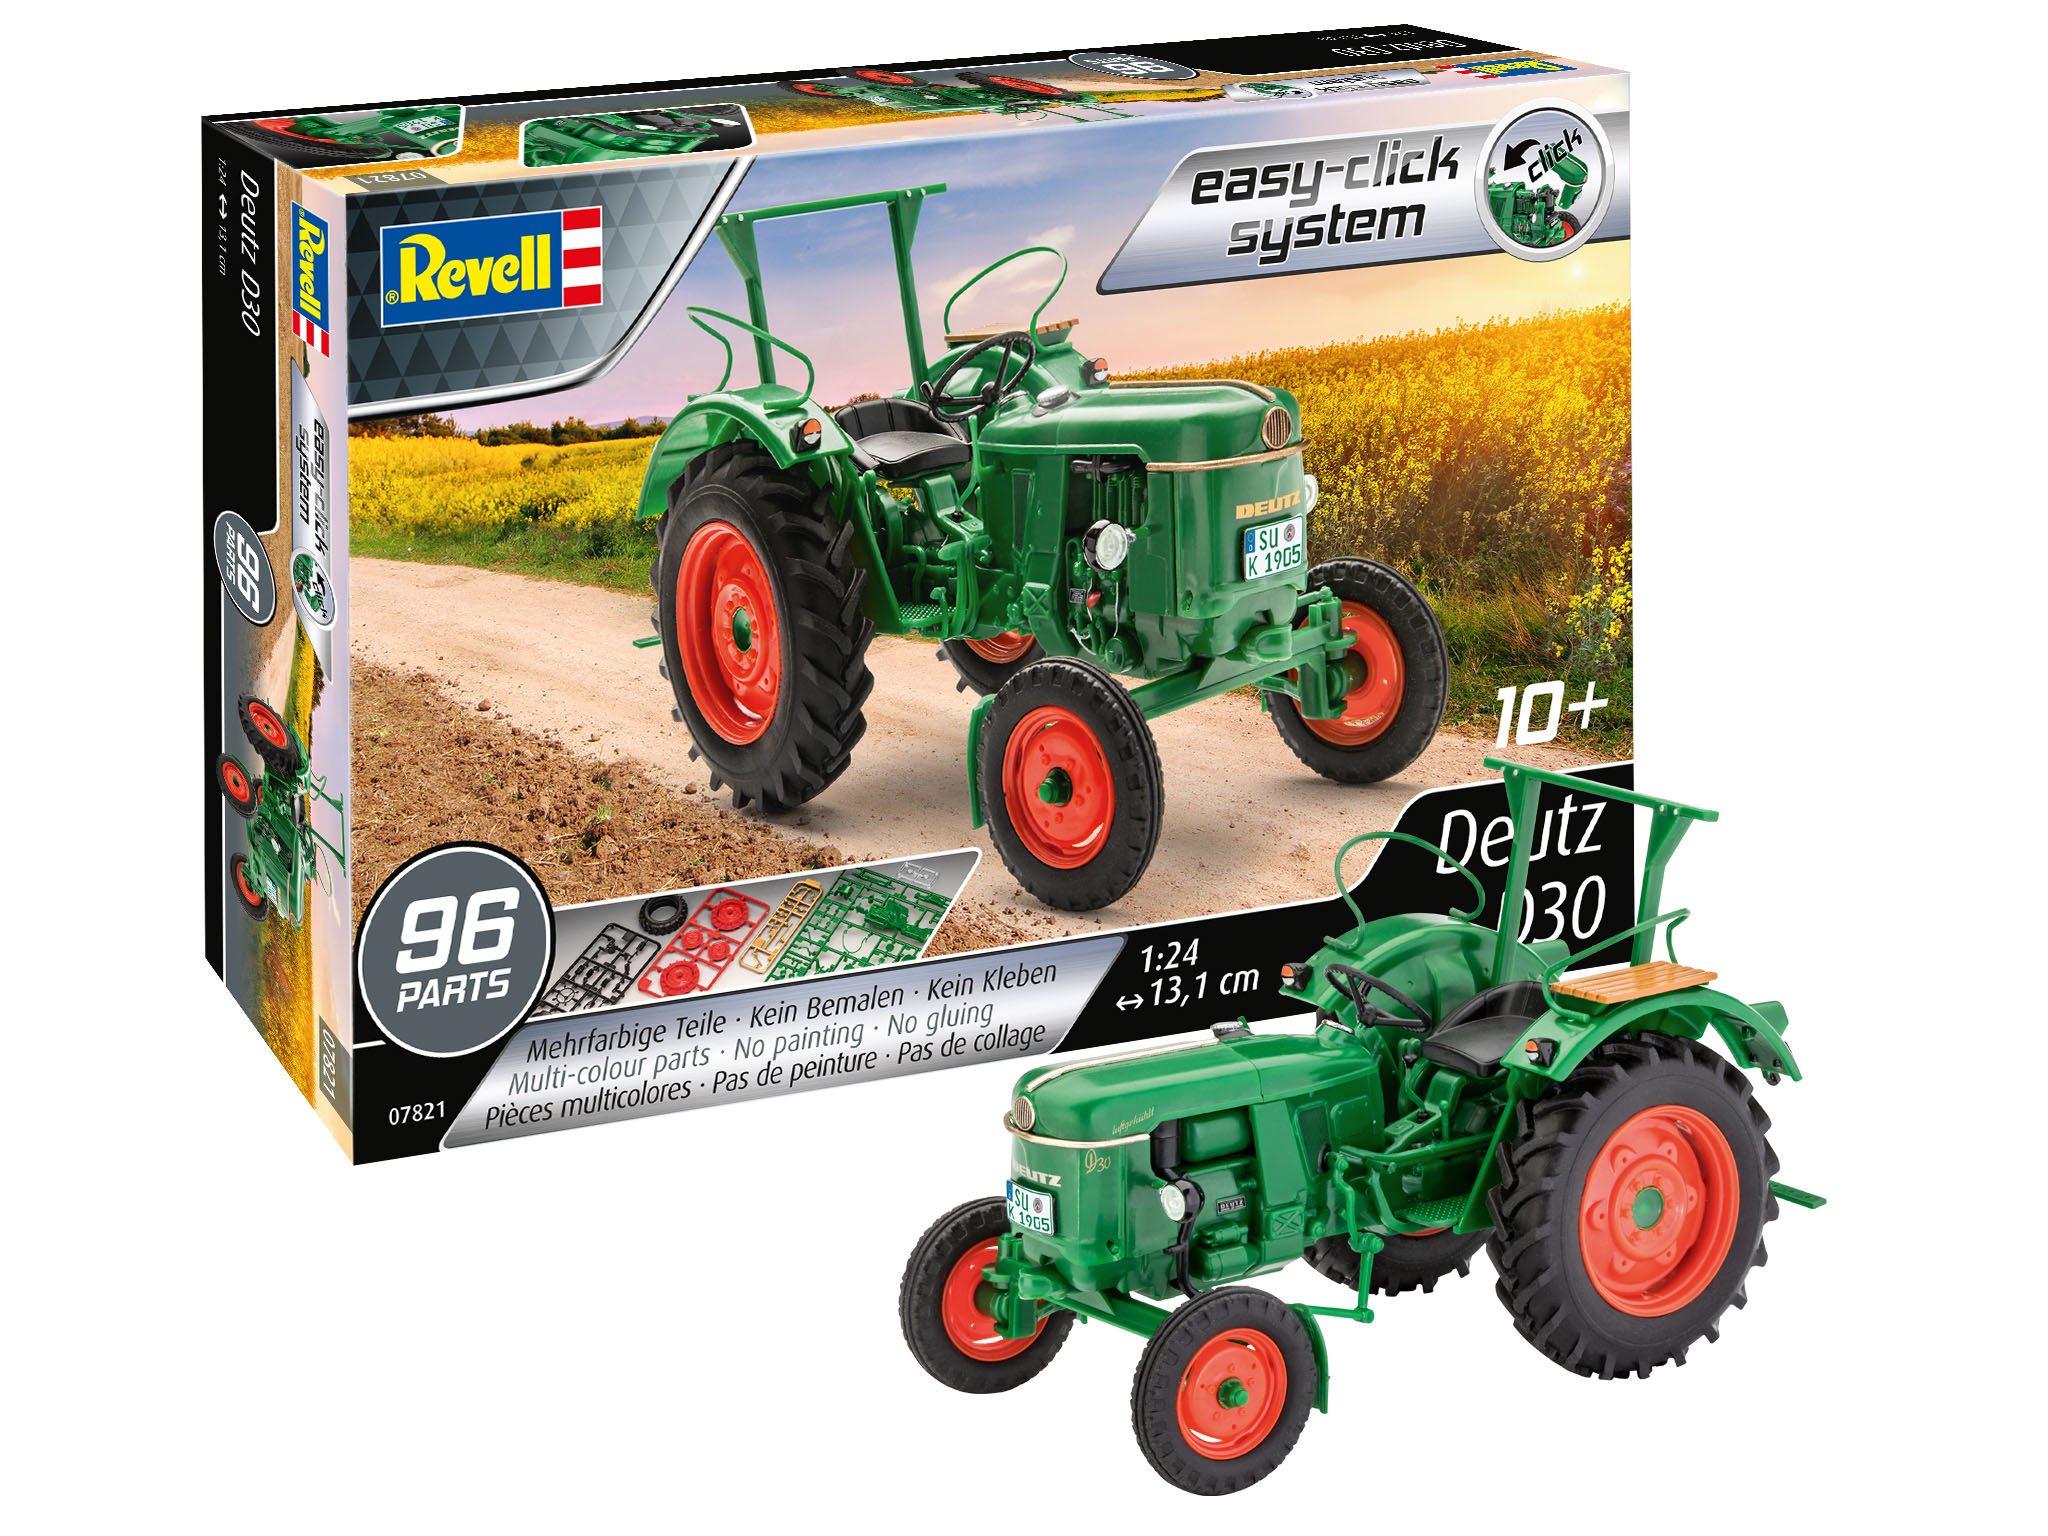 Deutz D30 Revell easy click system Packung